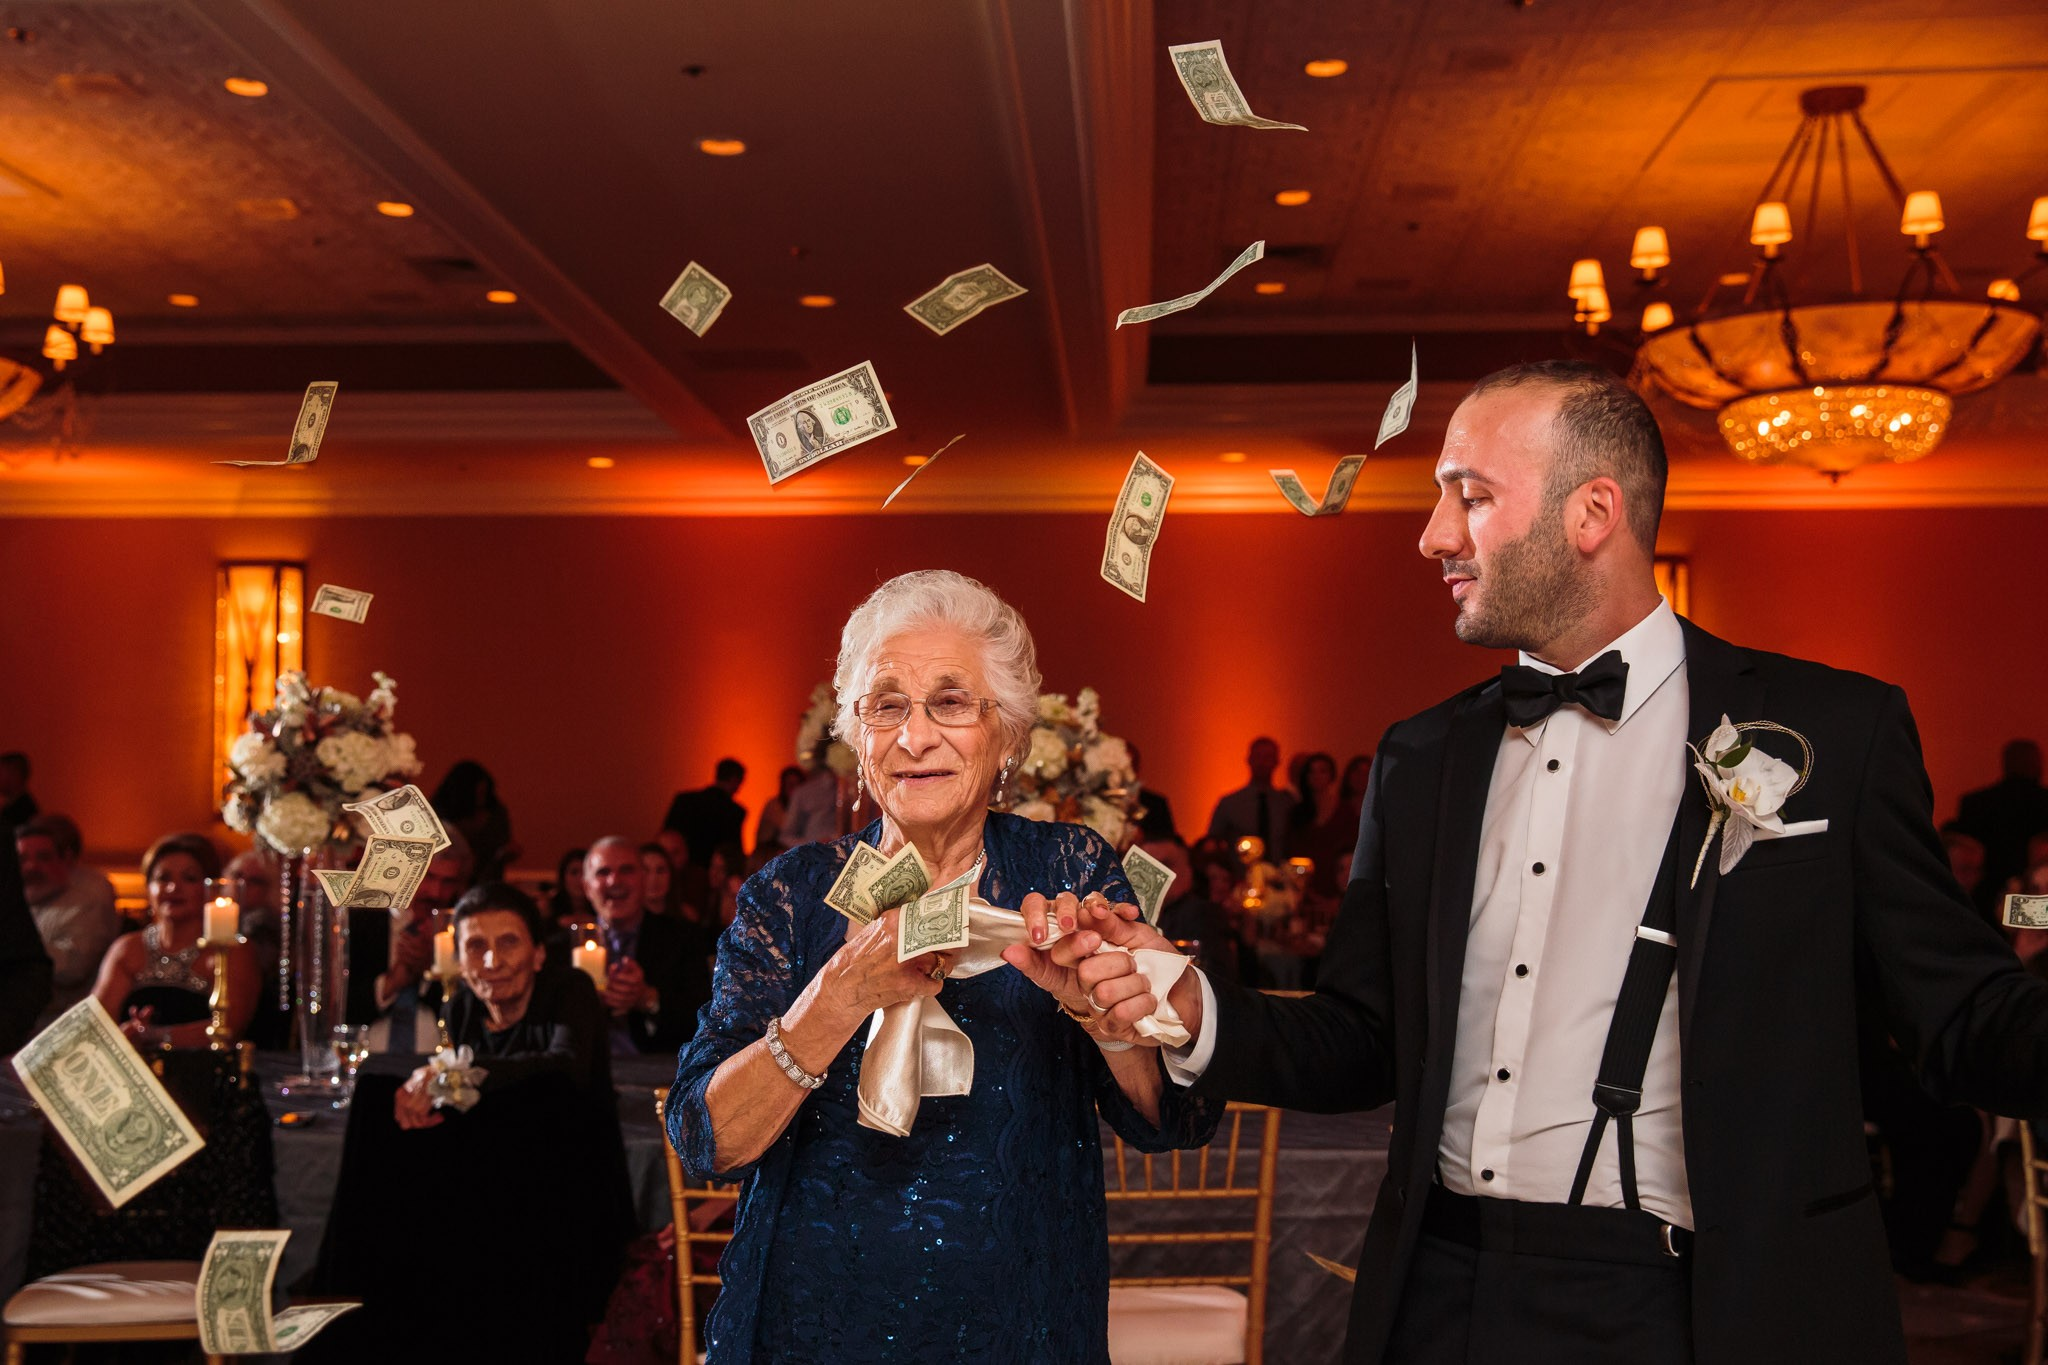 Grandma making it rain money.